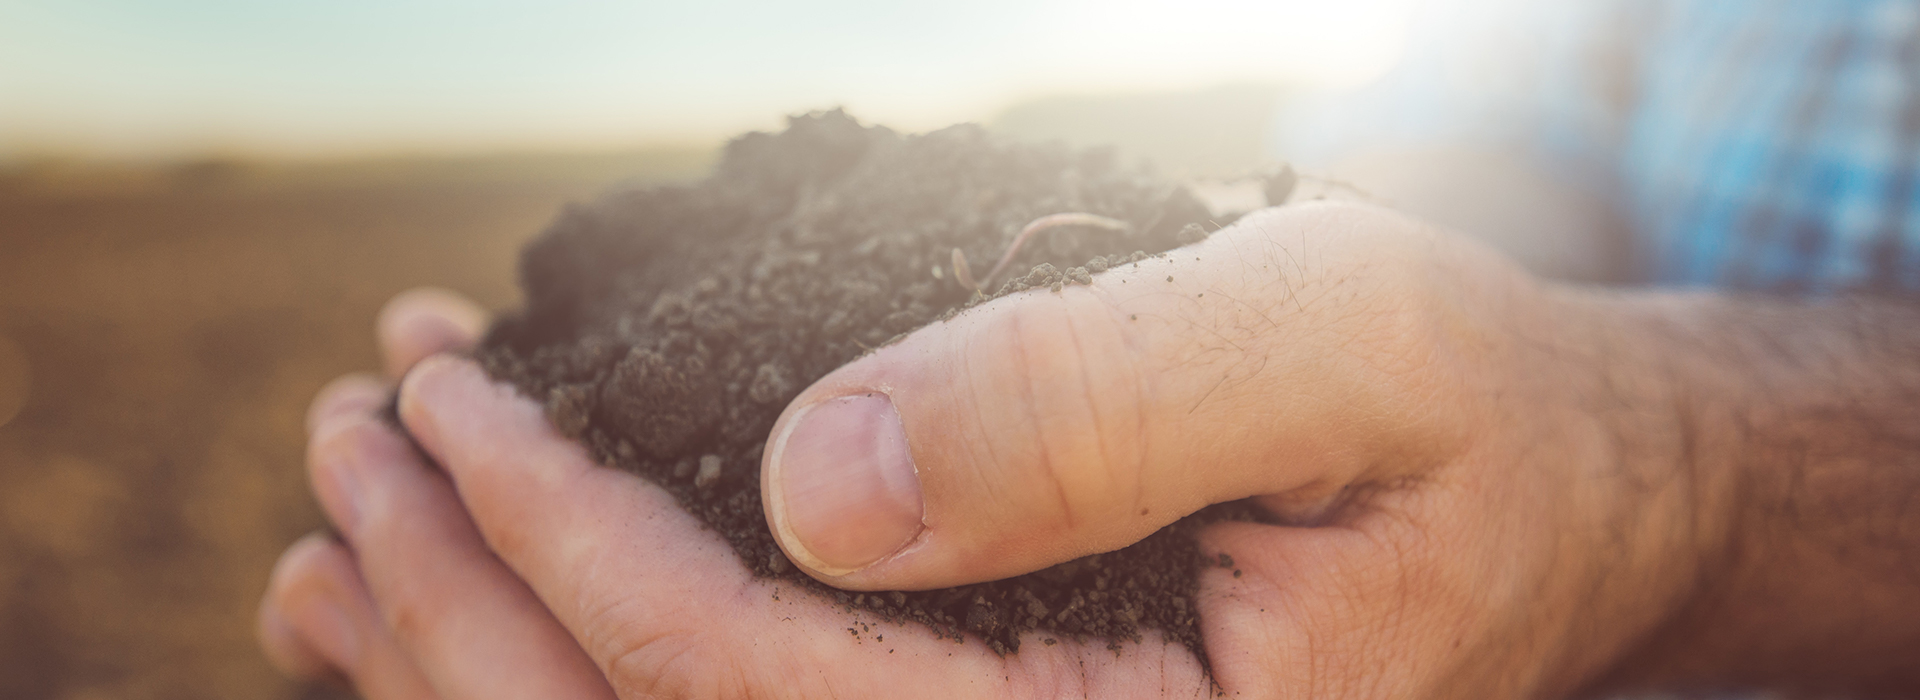 Farmer holding soil with hands